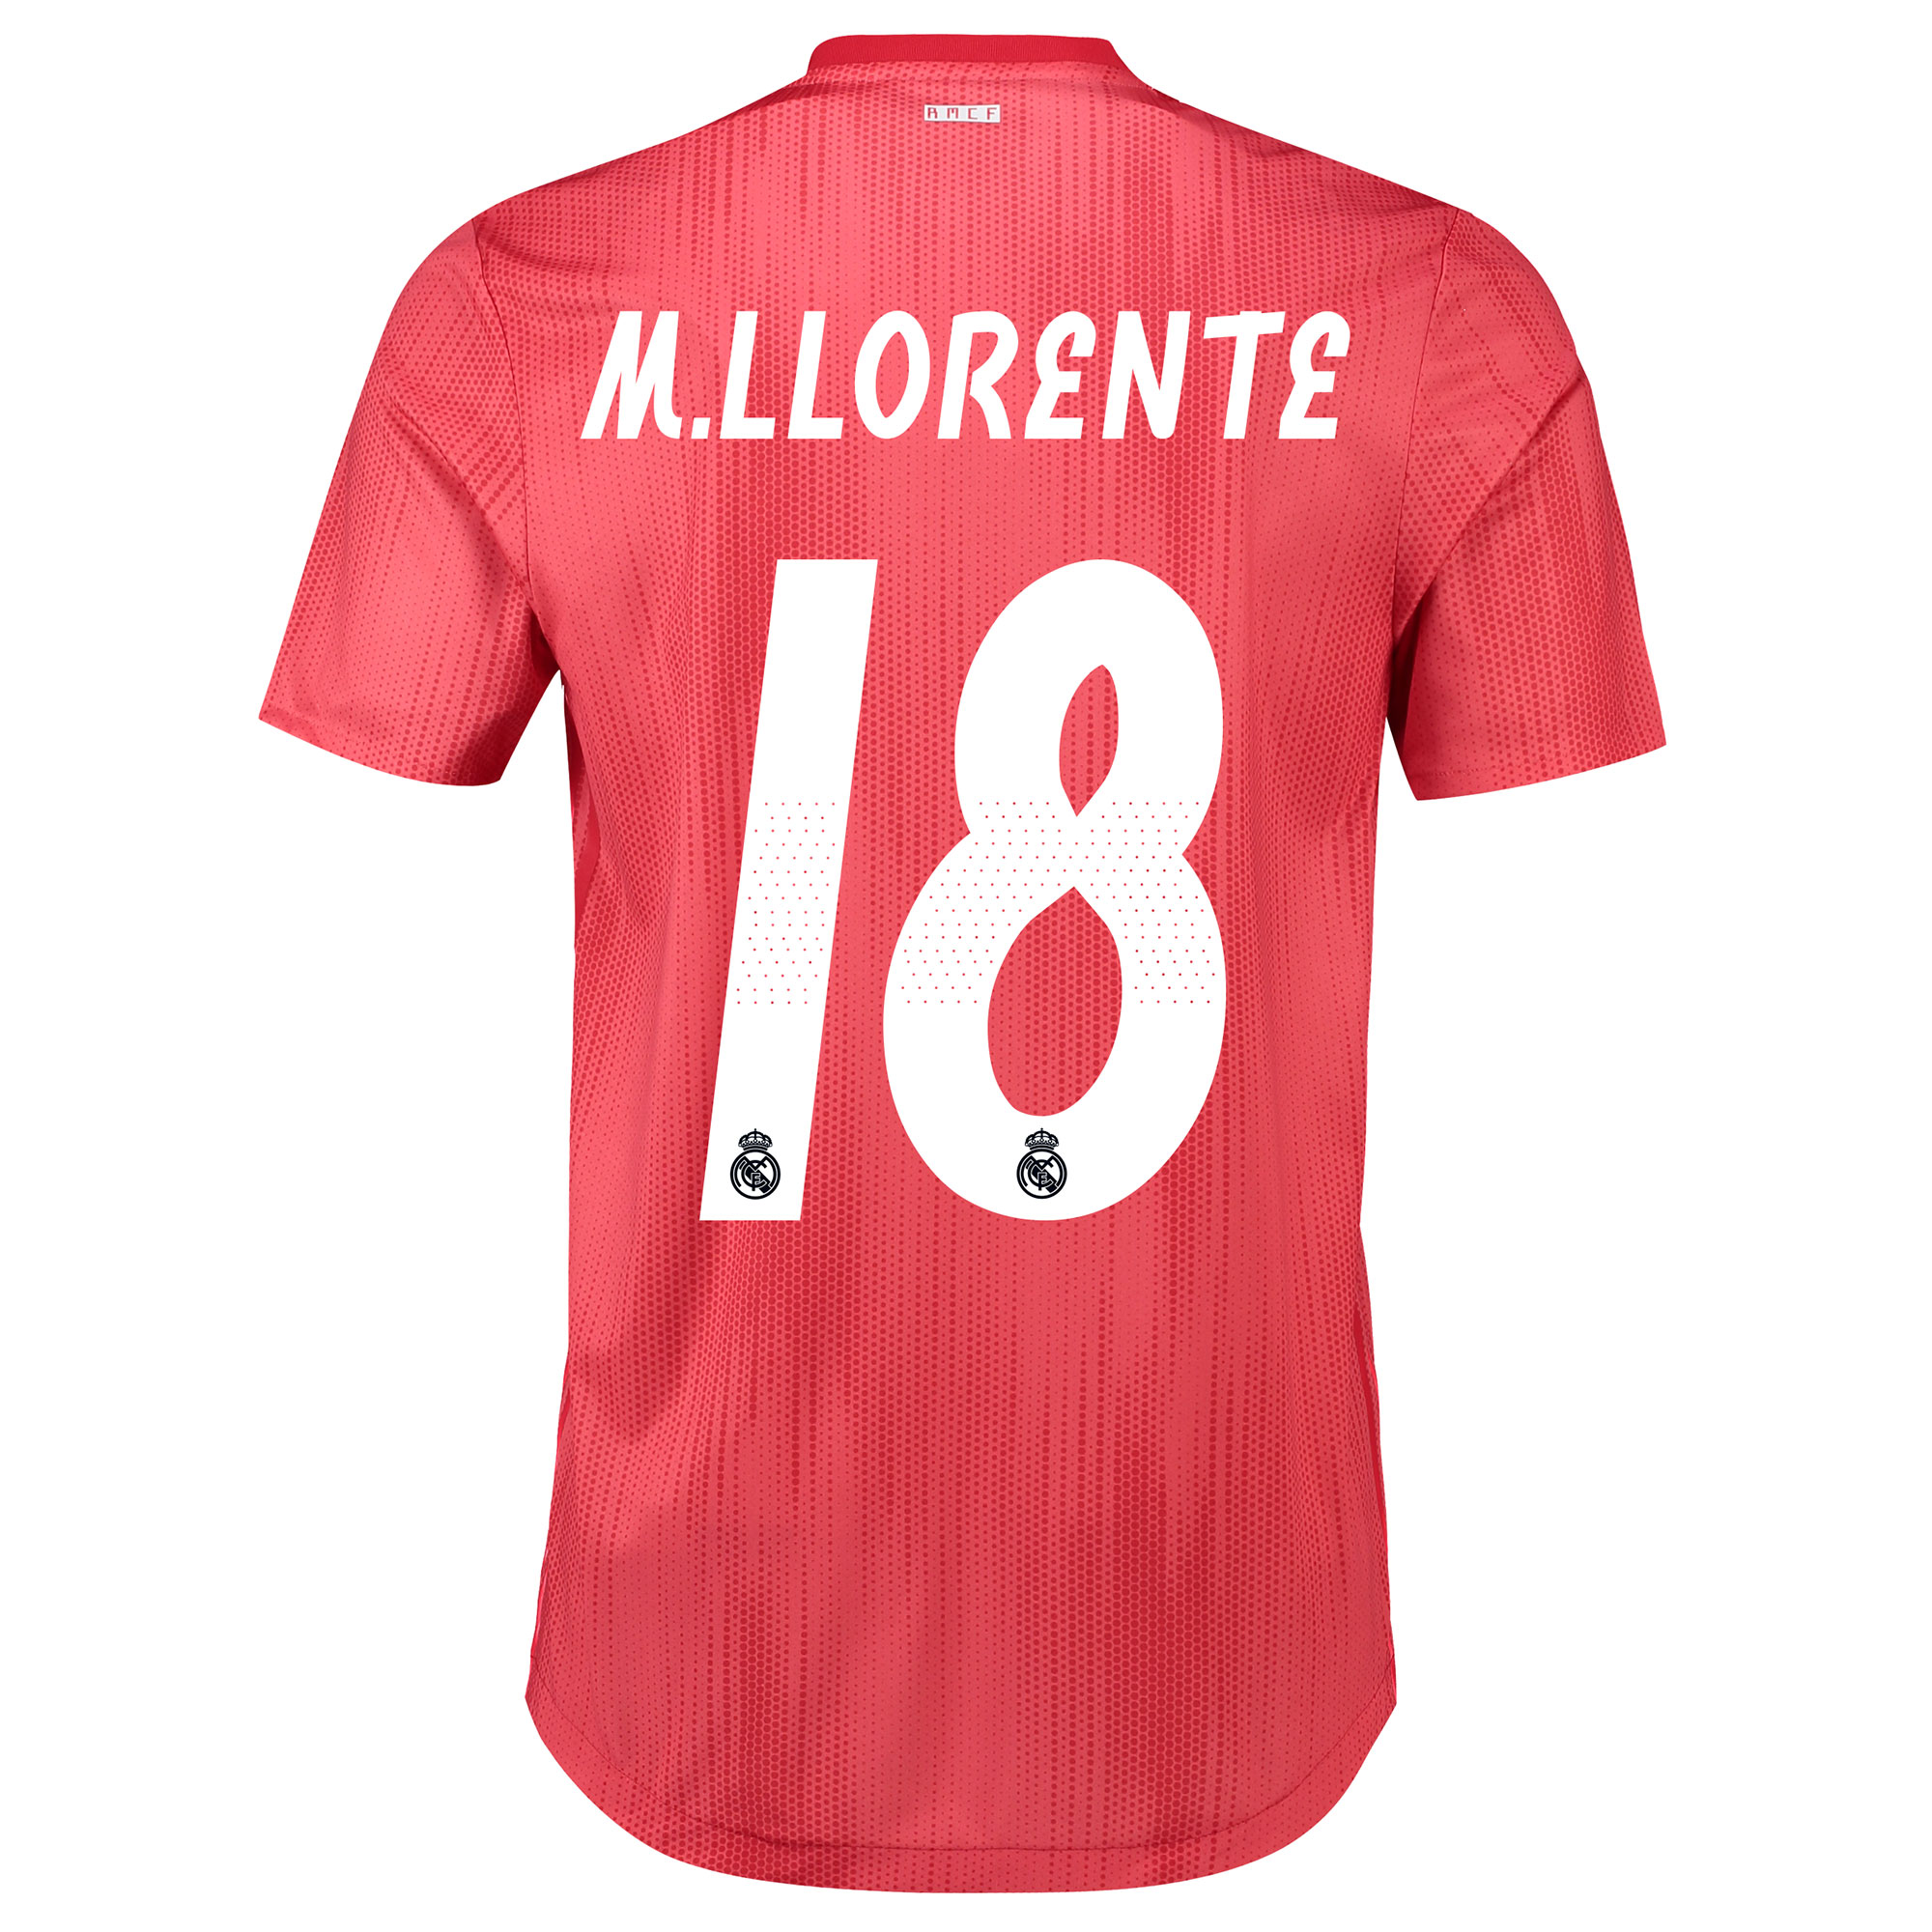 Maillot Exterieur Real Madrid 2017 Maillot Third Real Madrid M Llorente